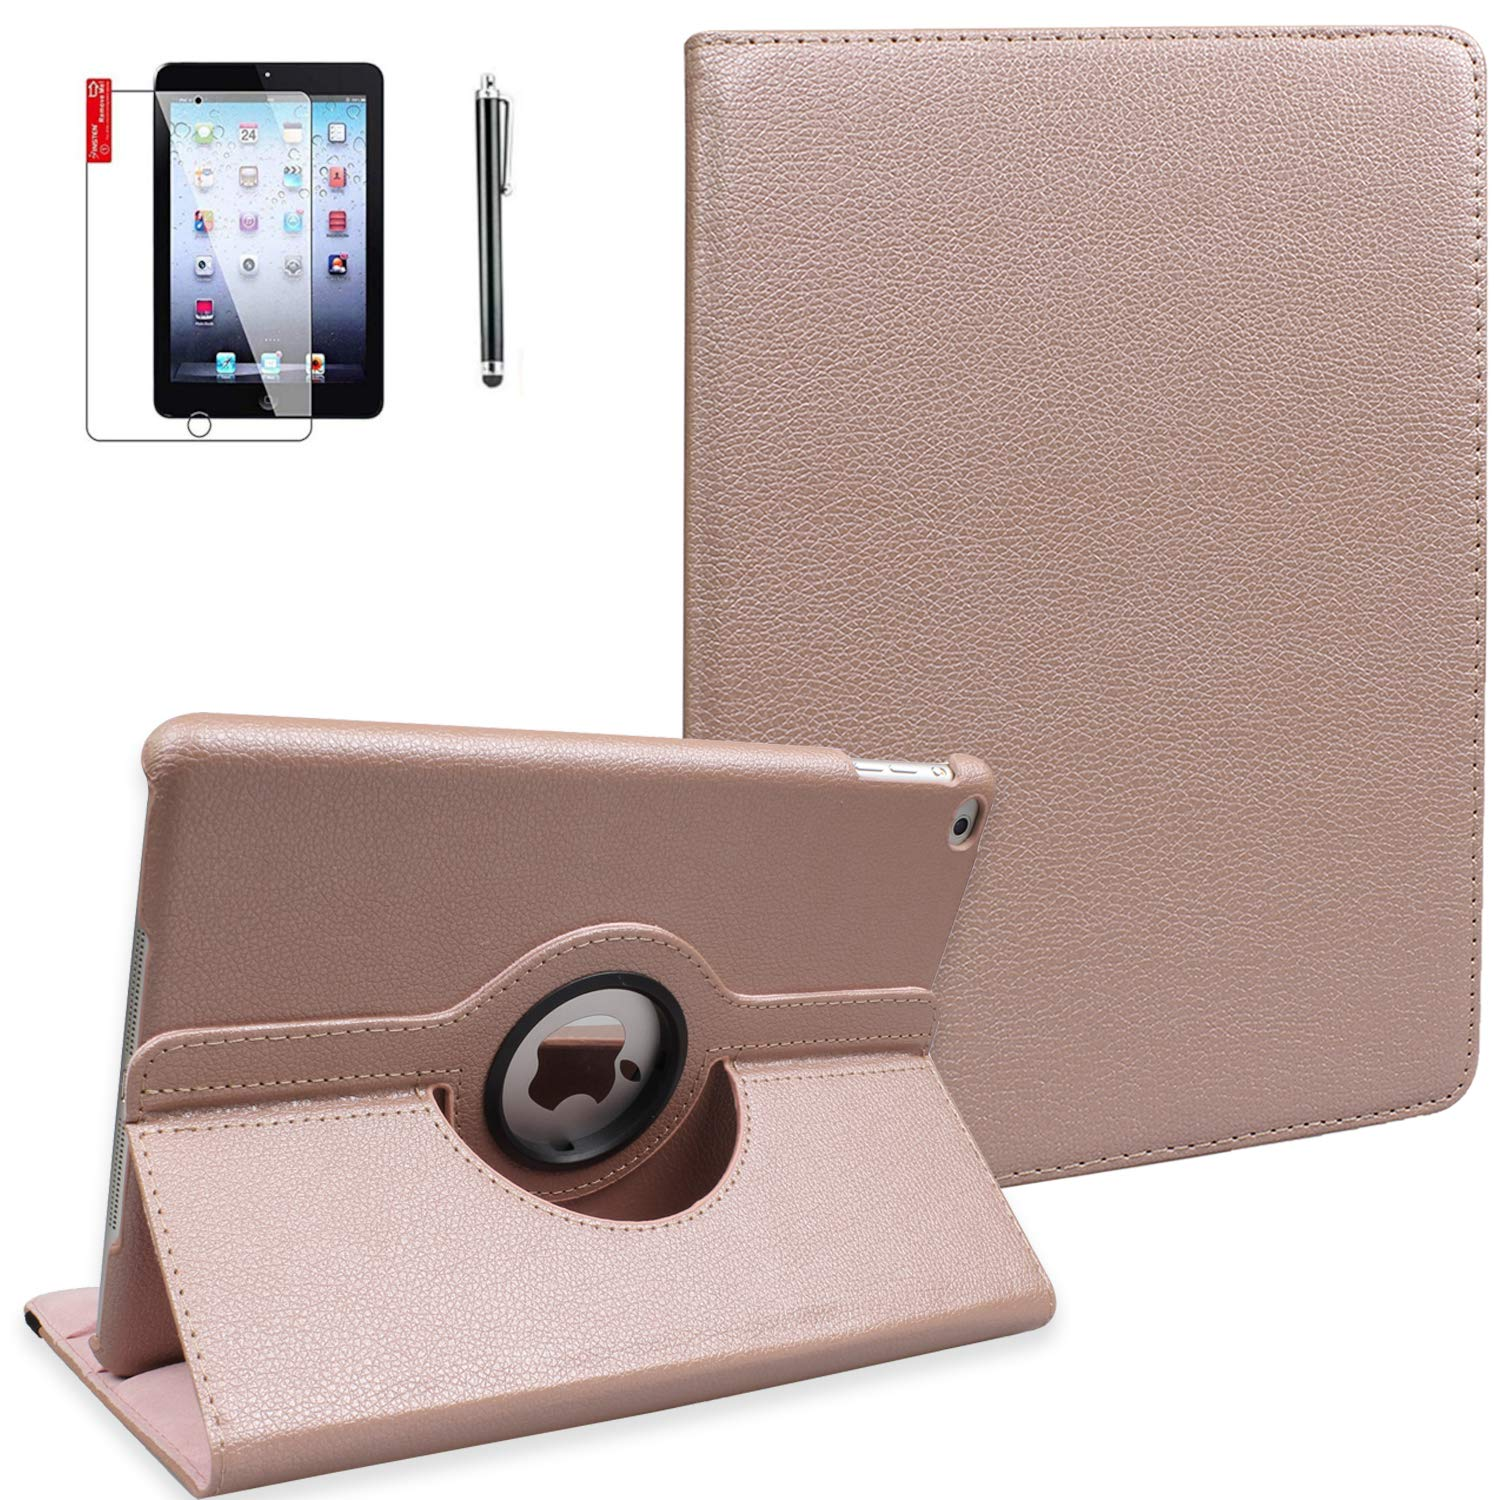 iPad 2 3 4 Case Smart Cover with Screen Protector and Stylus - iPad 4th Generation Case - Model A1395 A1416 A1458 - 360 Degree Rotating Stand, Auto Sleep Wake, Shockproof - MD510LL/A (Rose Golden)